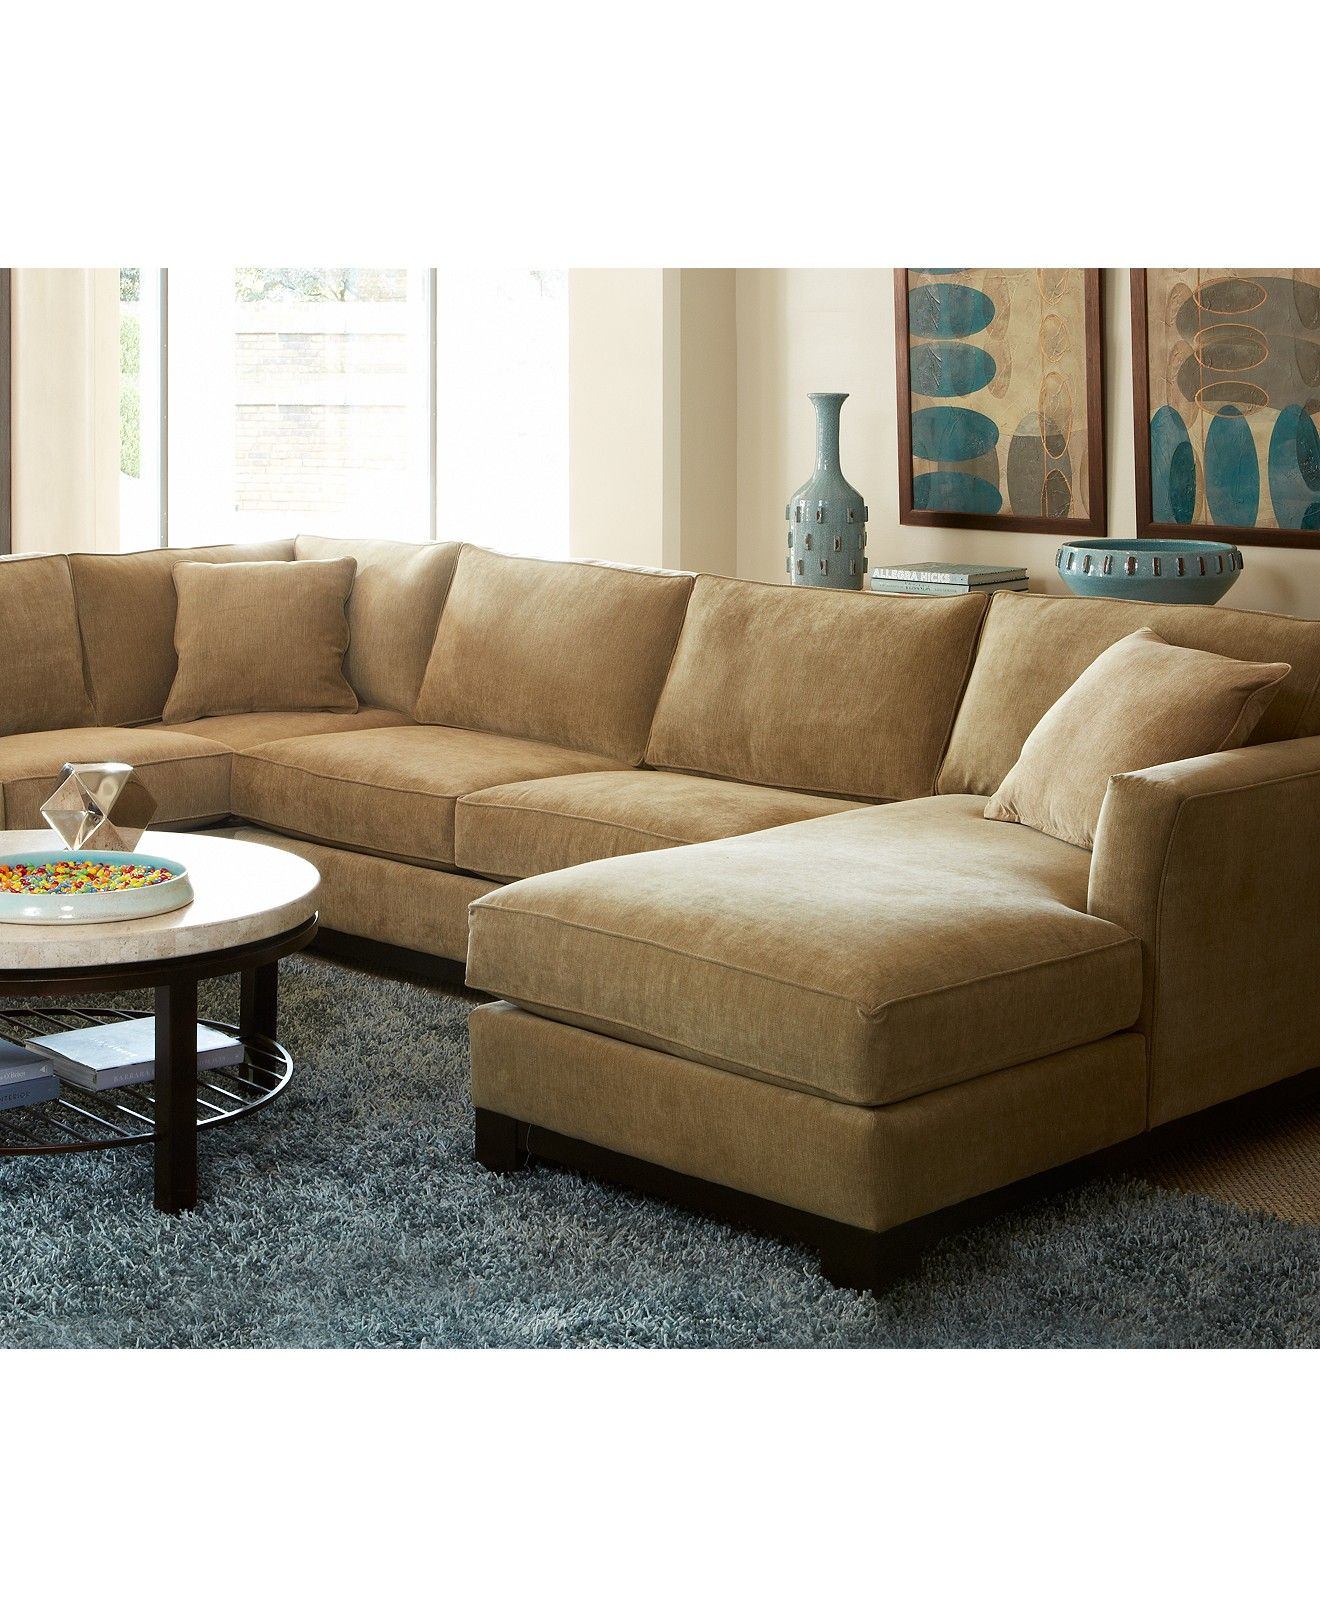 Kenton Fabric 3Piece Chaise Sectional Sofa Shop All Living Room